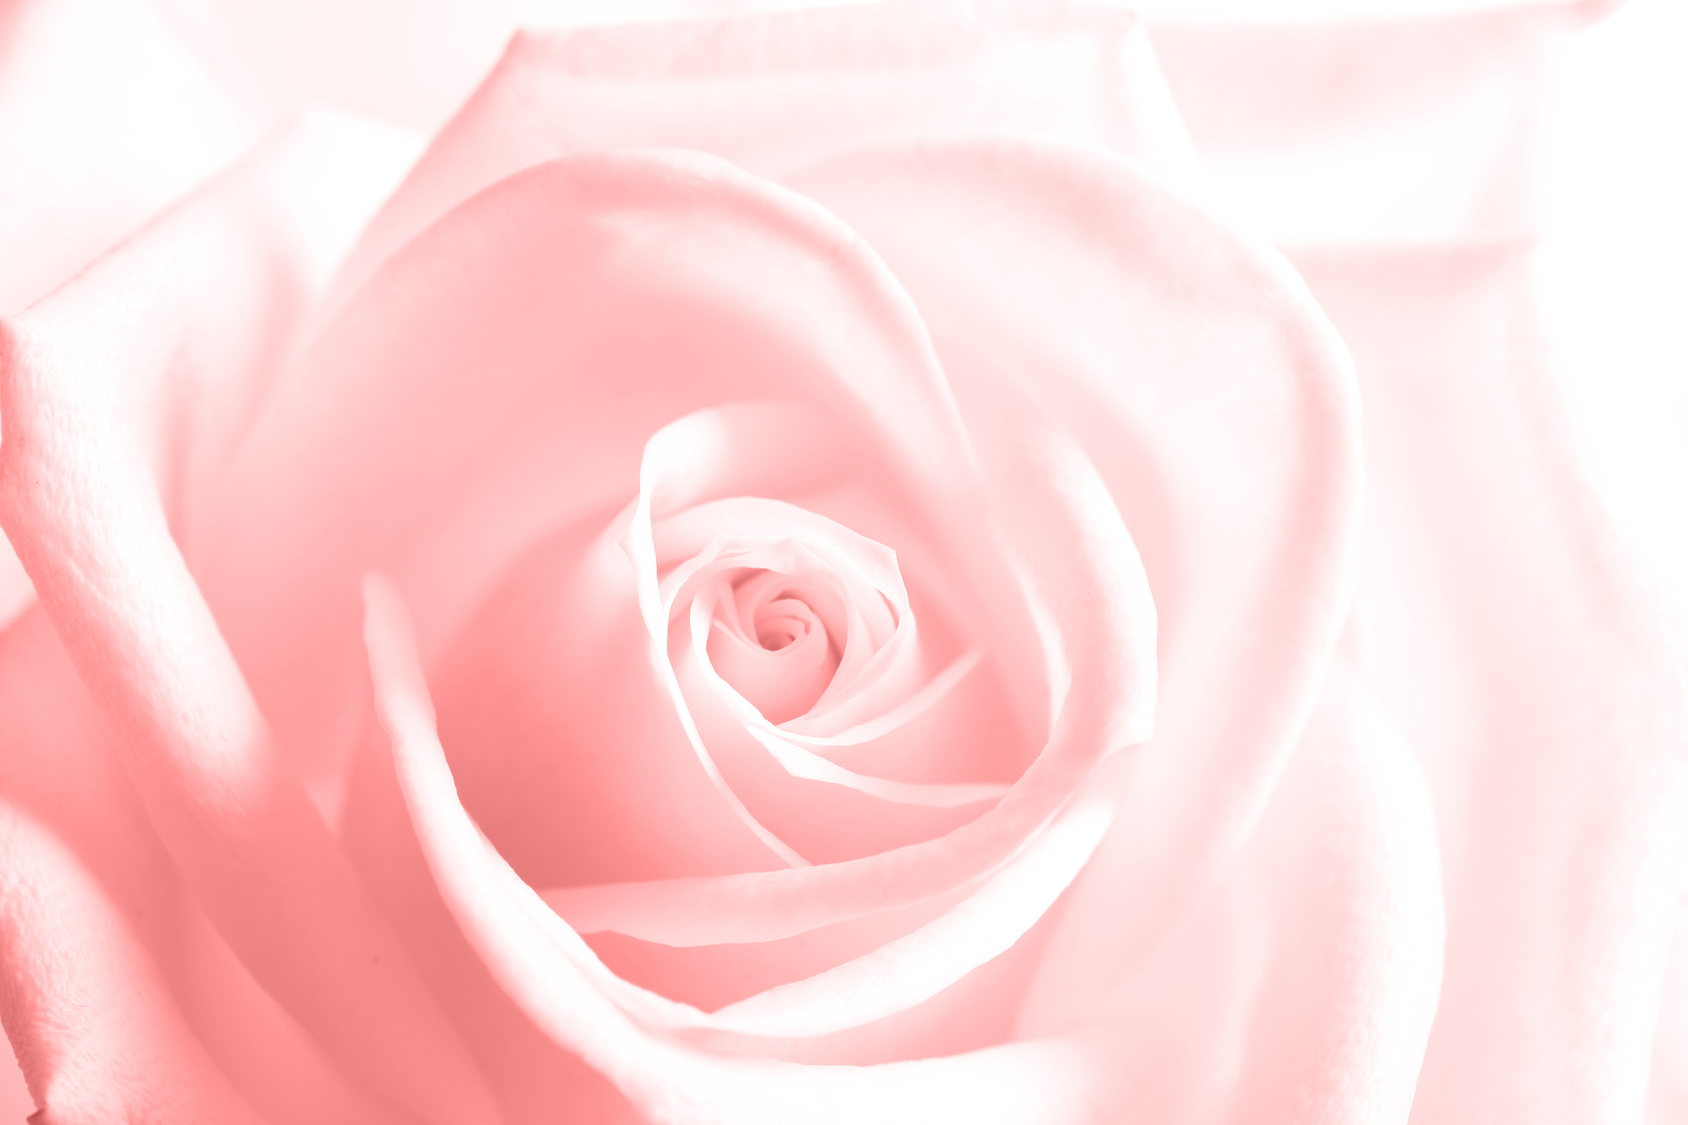 Floral motif wallpaper, beautiful rose. Colorful background with soft blurred effect